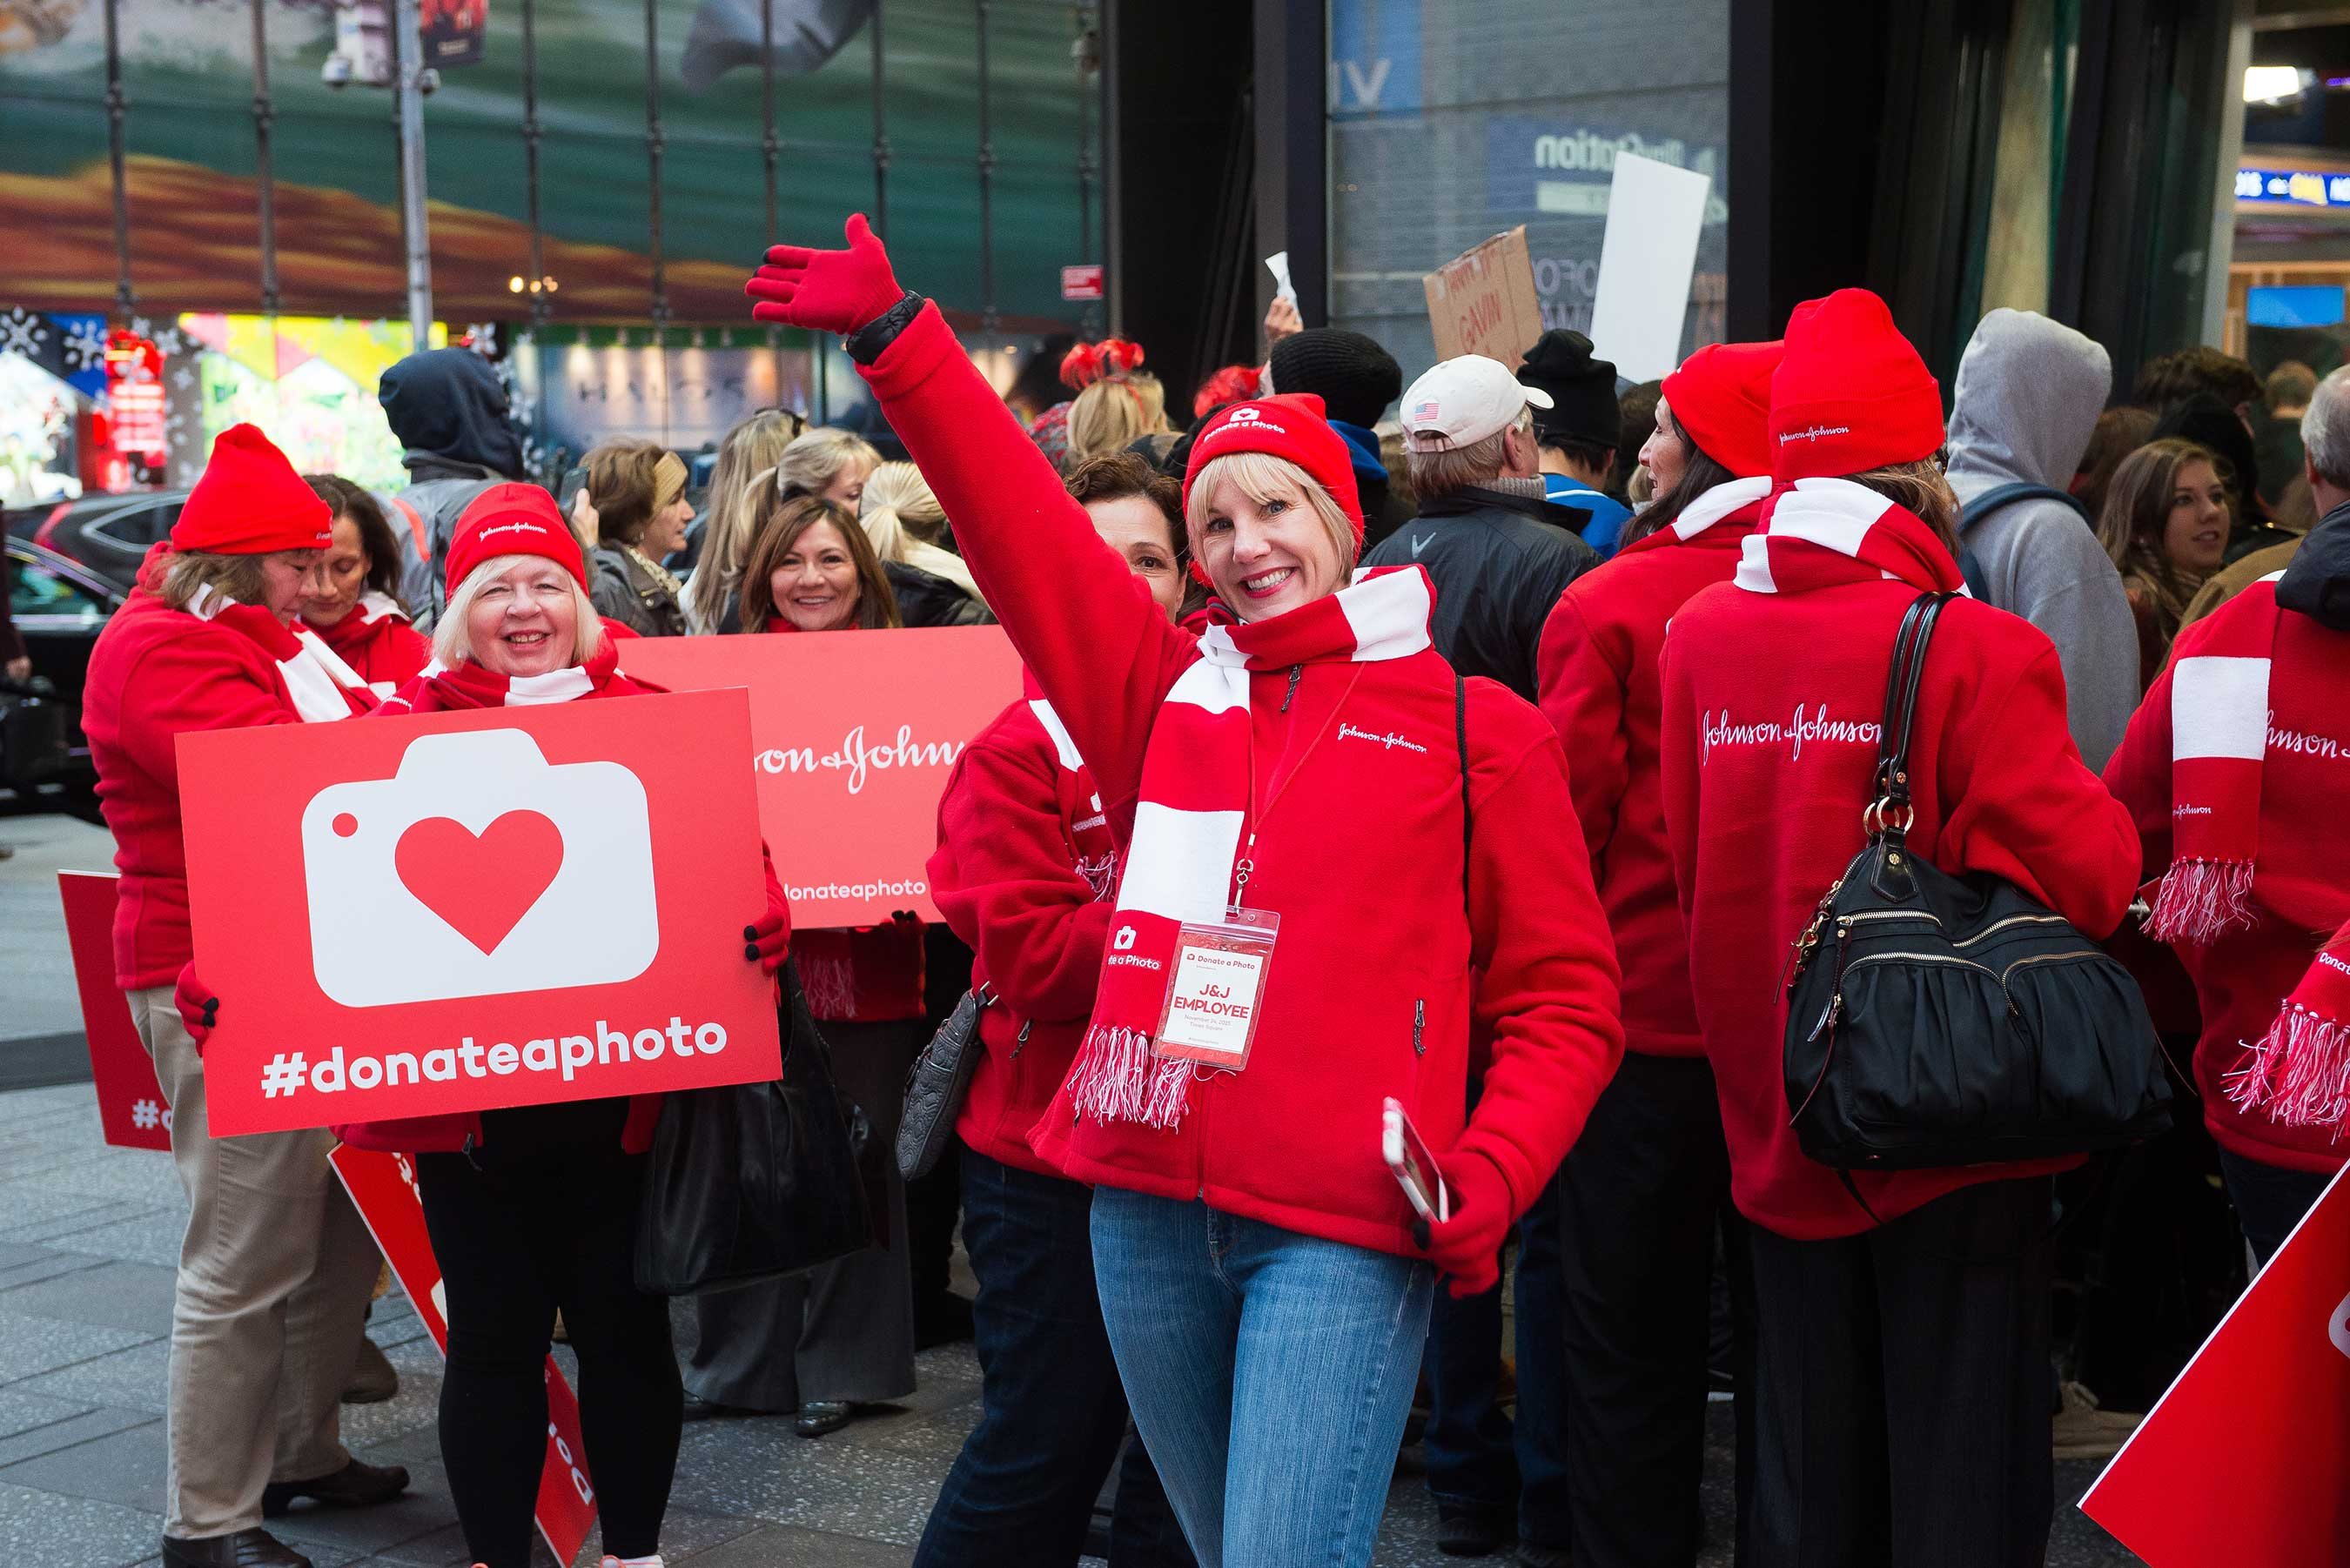 Johnson & Johnson kicks off the season of giving with Donate a Photo interactive giving experience in Times Square.